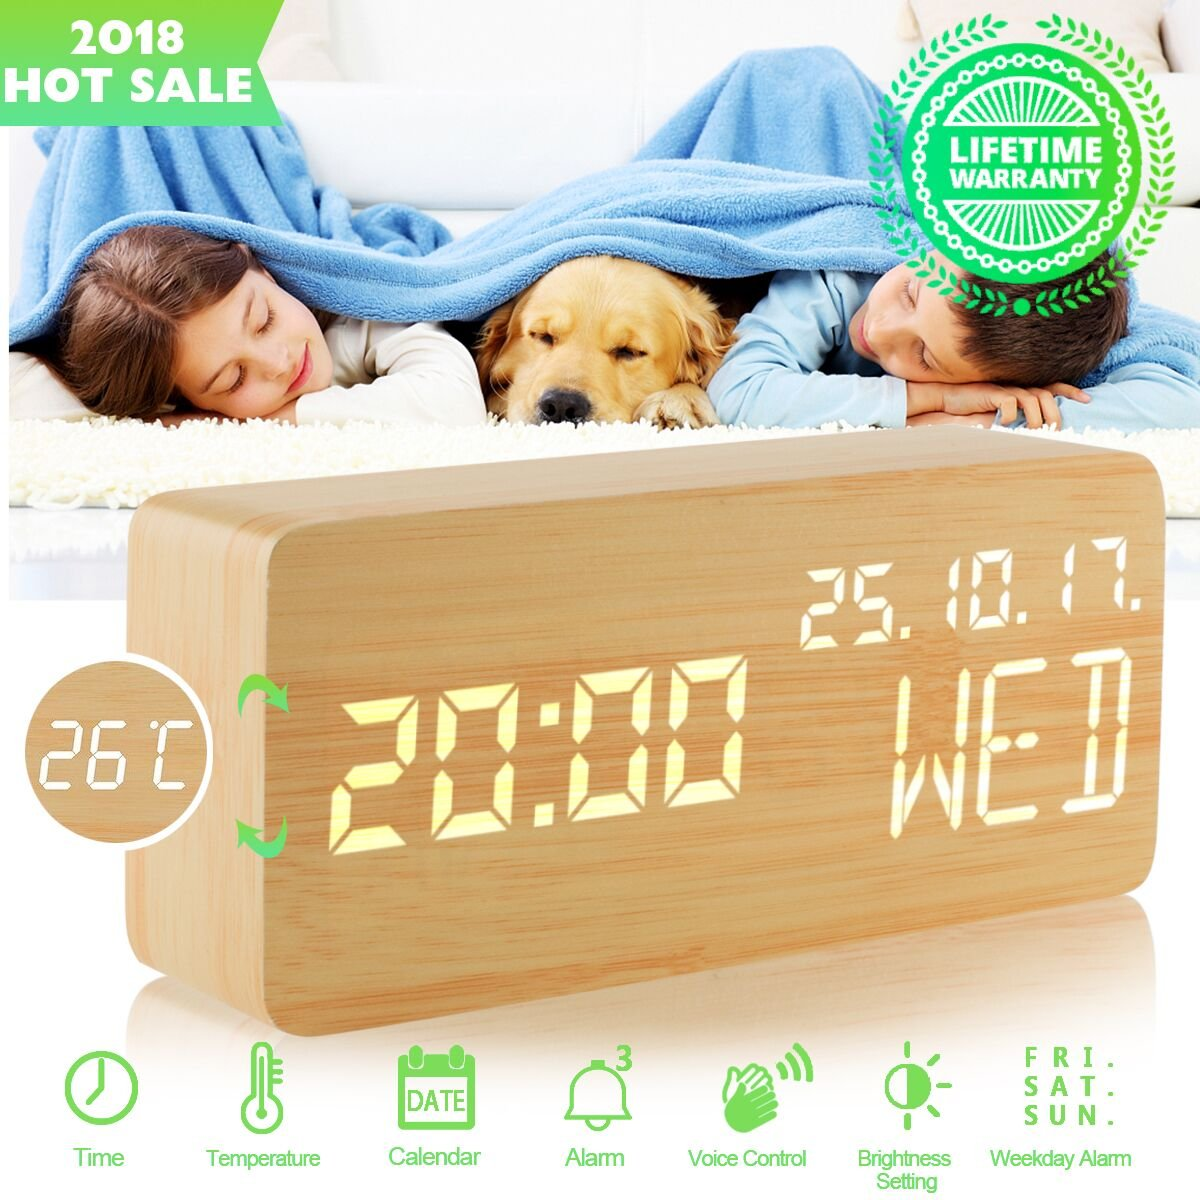 wood alarm clock,small digital clock temperature,rechargeable alarm clock electric,led clock,wooden clock,bedside clocks 3 Alarms 3 Level Brightness voice control Show Time Date Week for bedroom desk